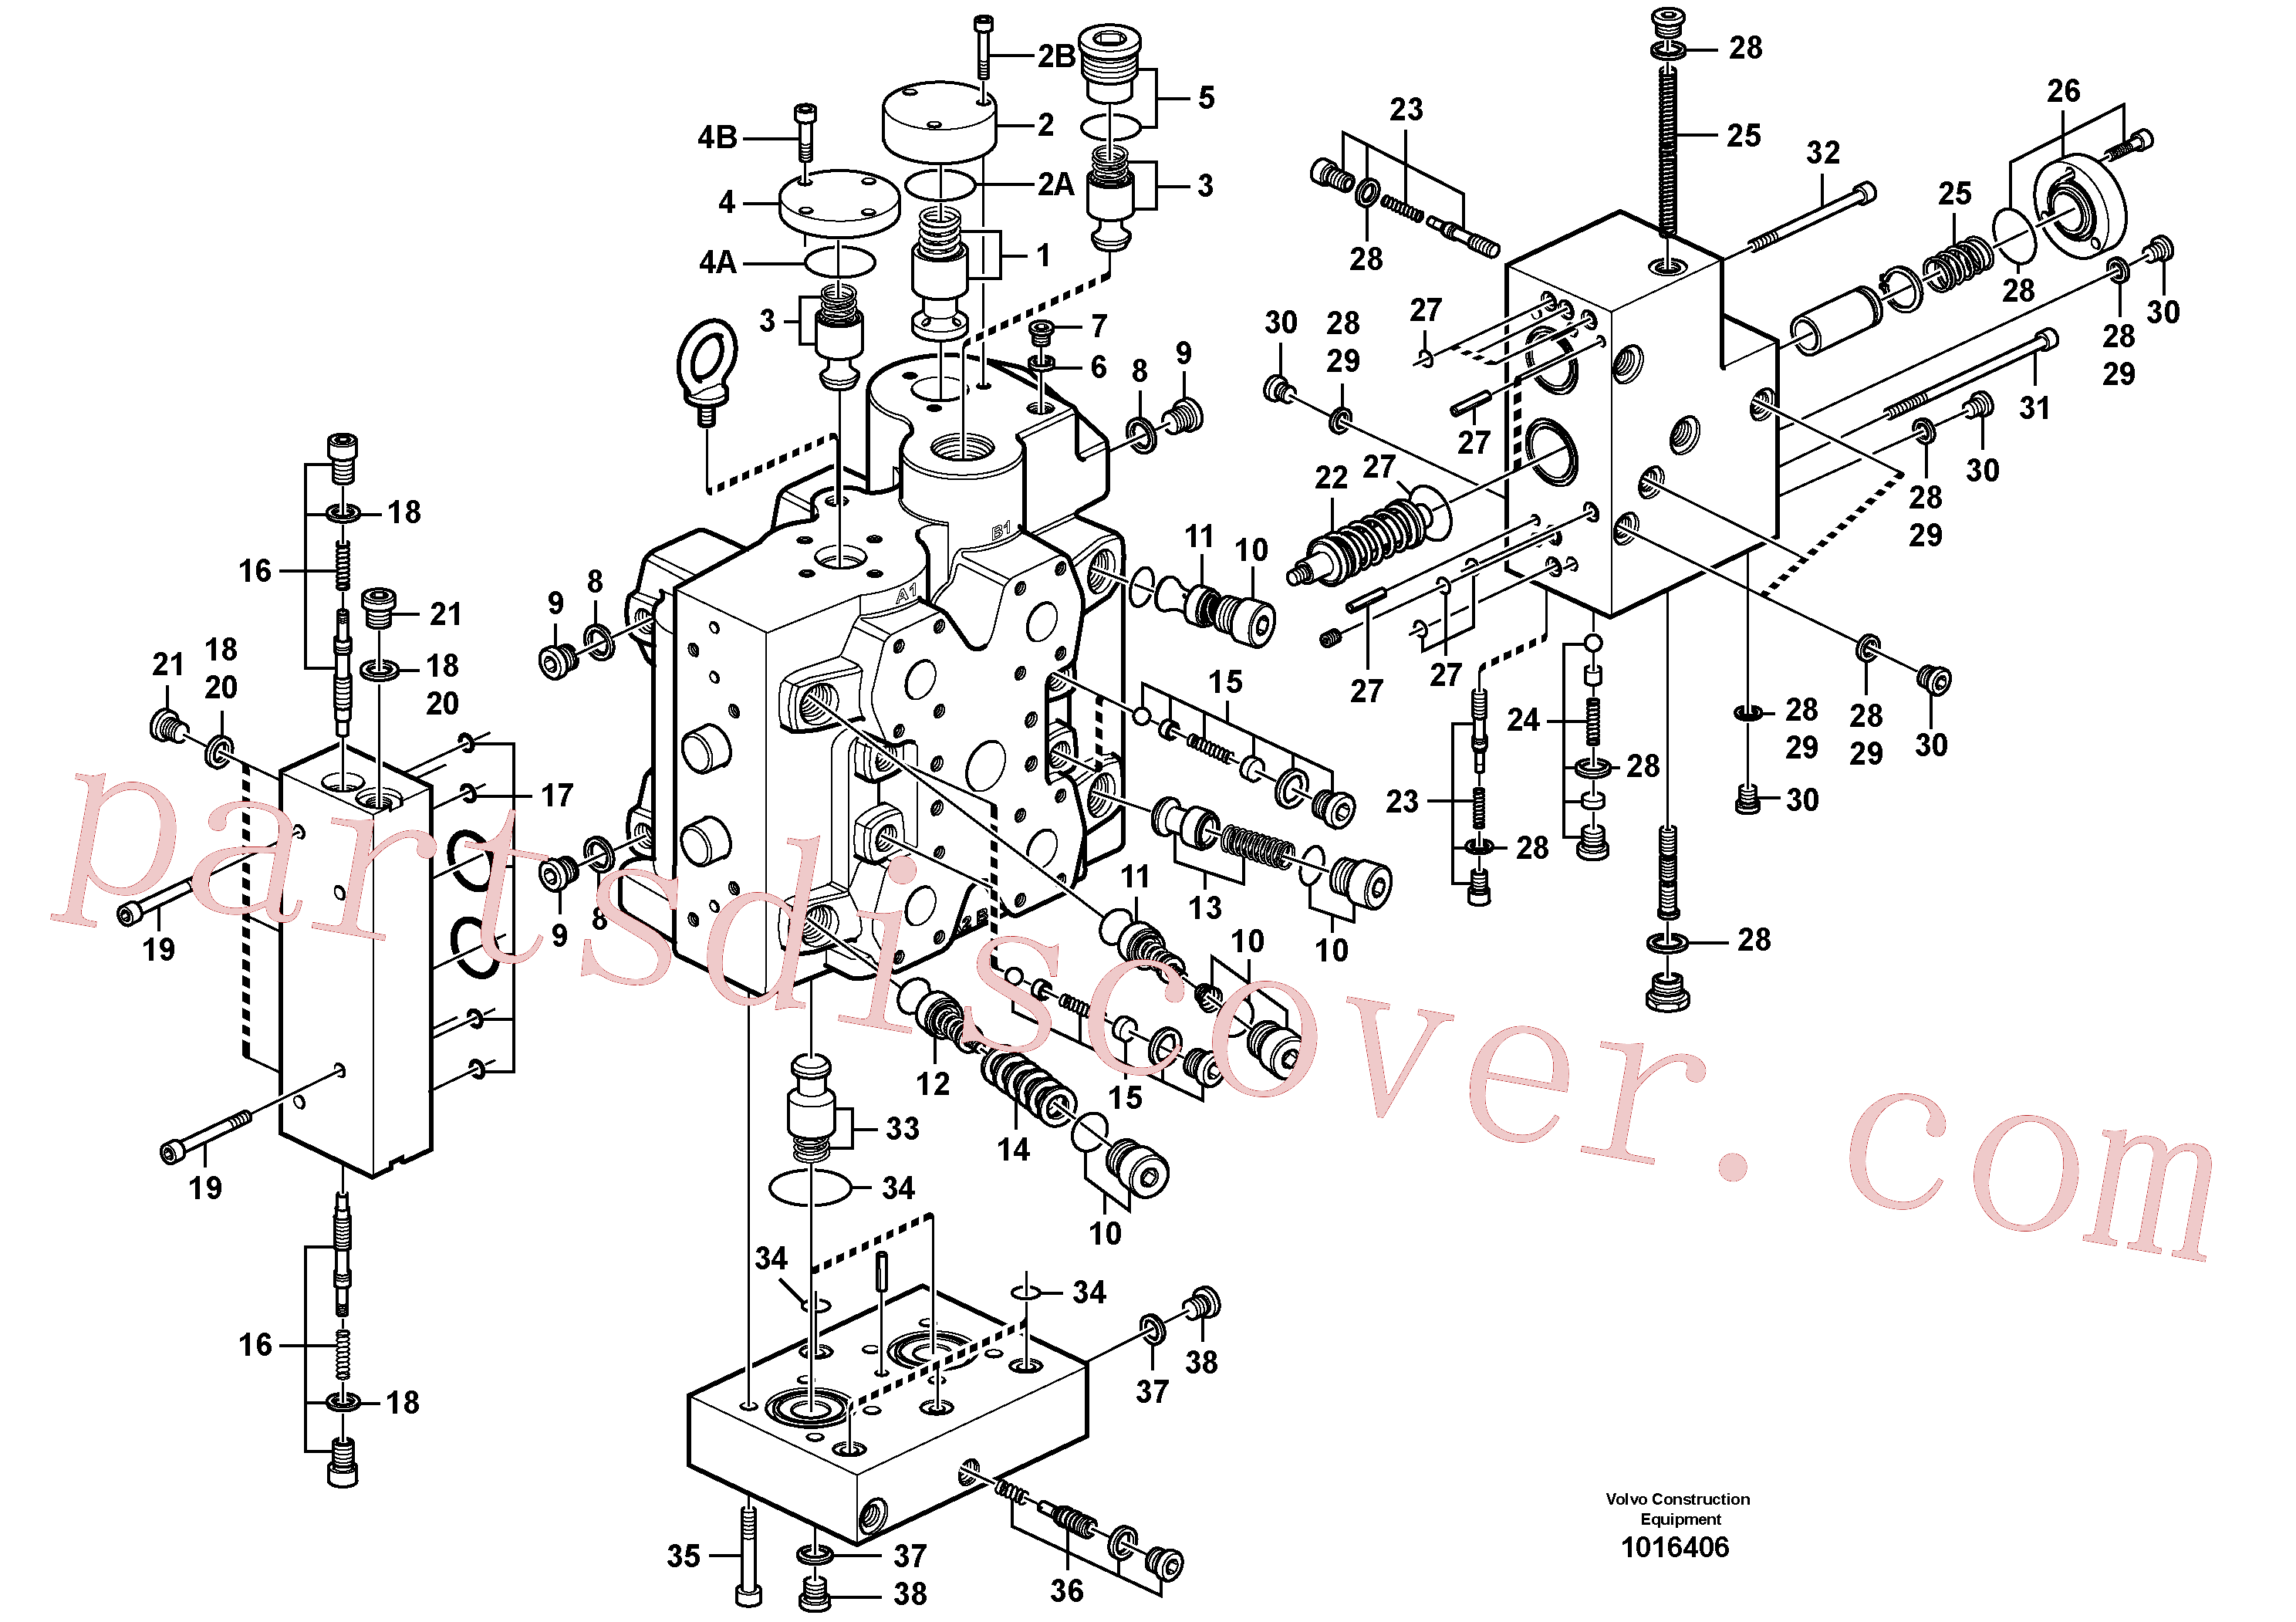 VOE13965768 for Volvo Control valve, Control valve.(1016406 assembly)